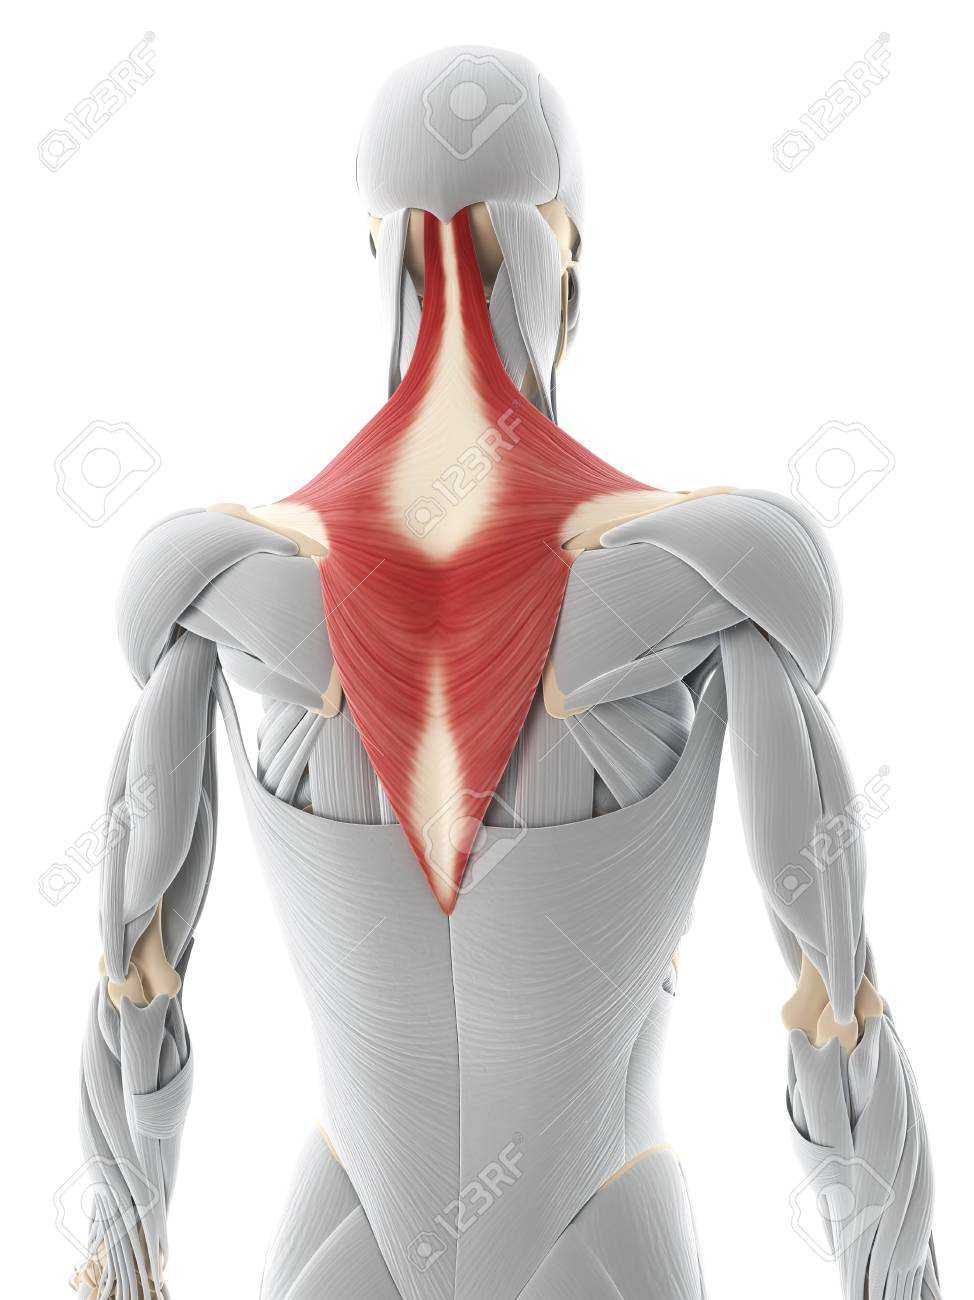 Back Muscle Computer Artwork Showing The Trapezius Muscle Stock